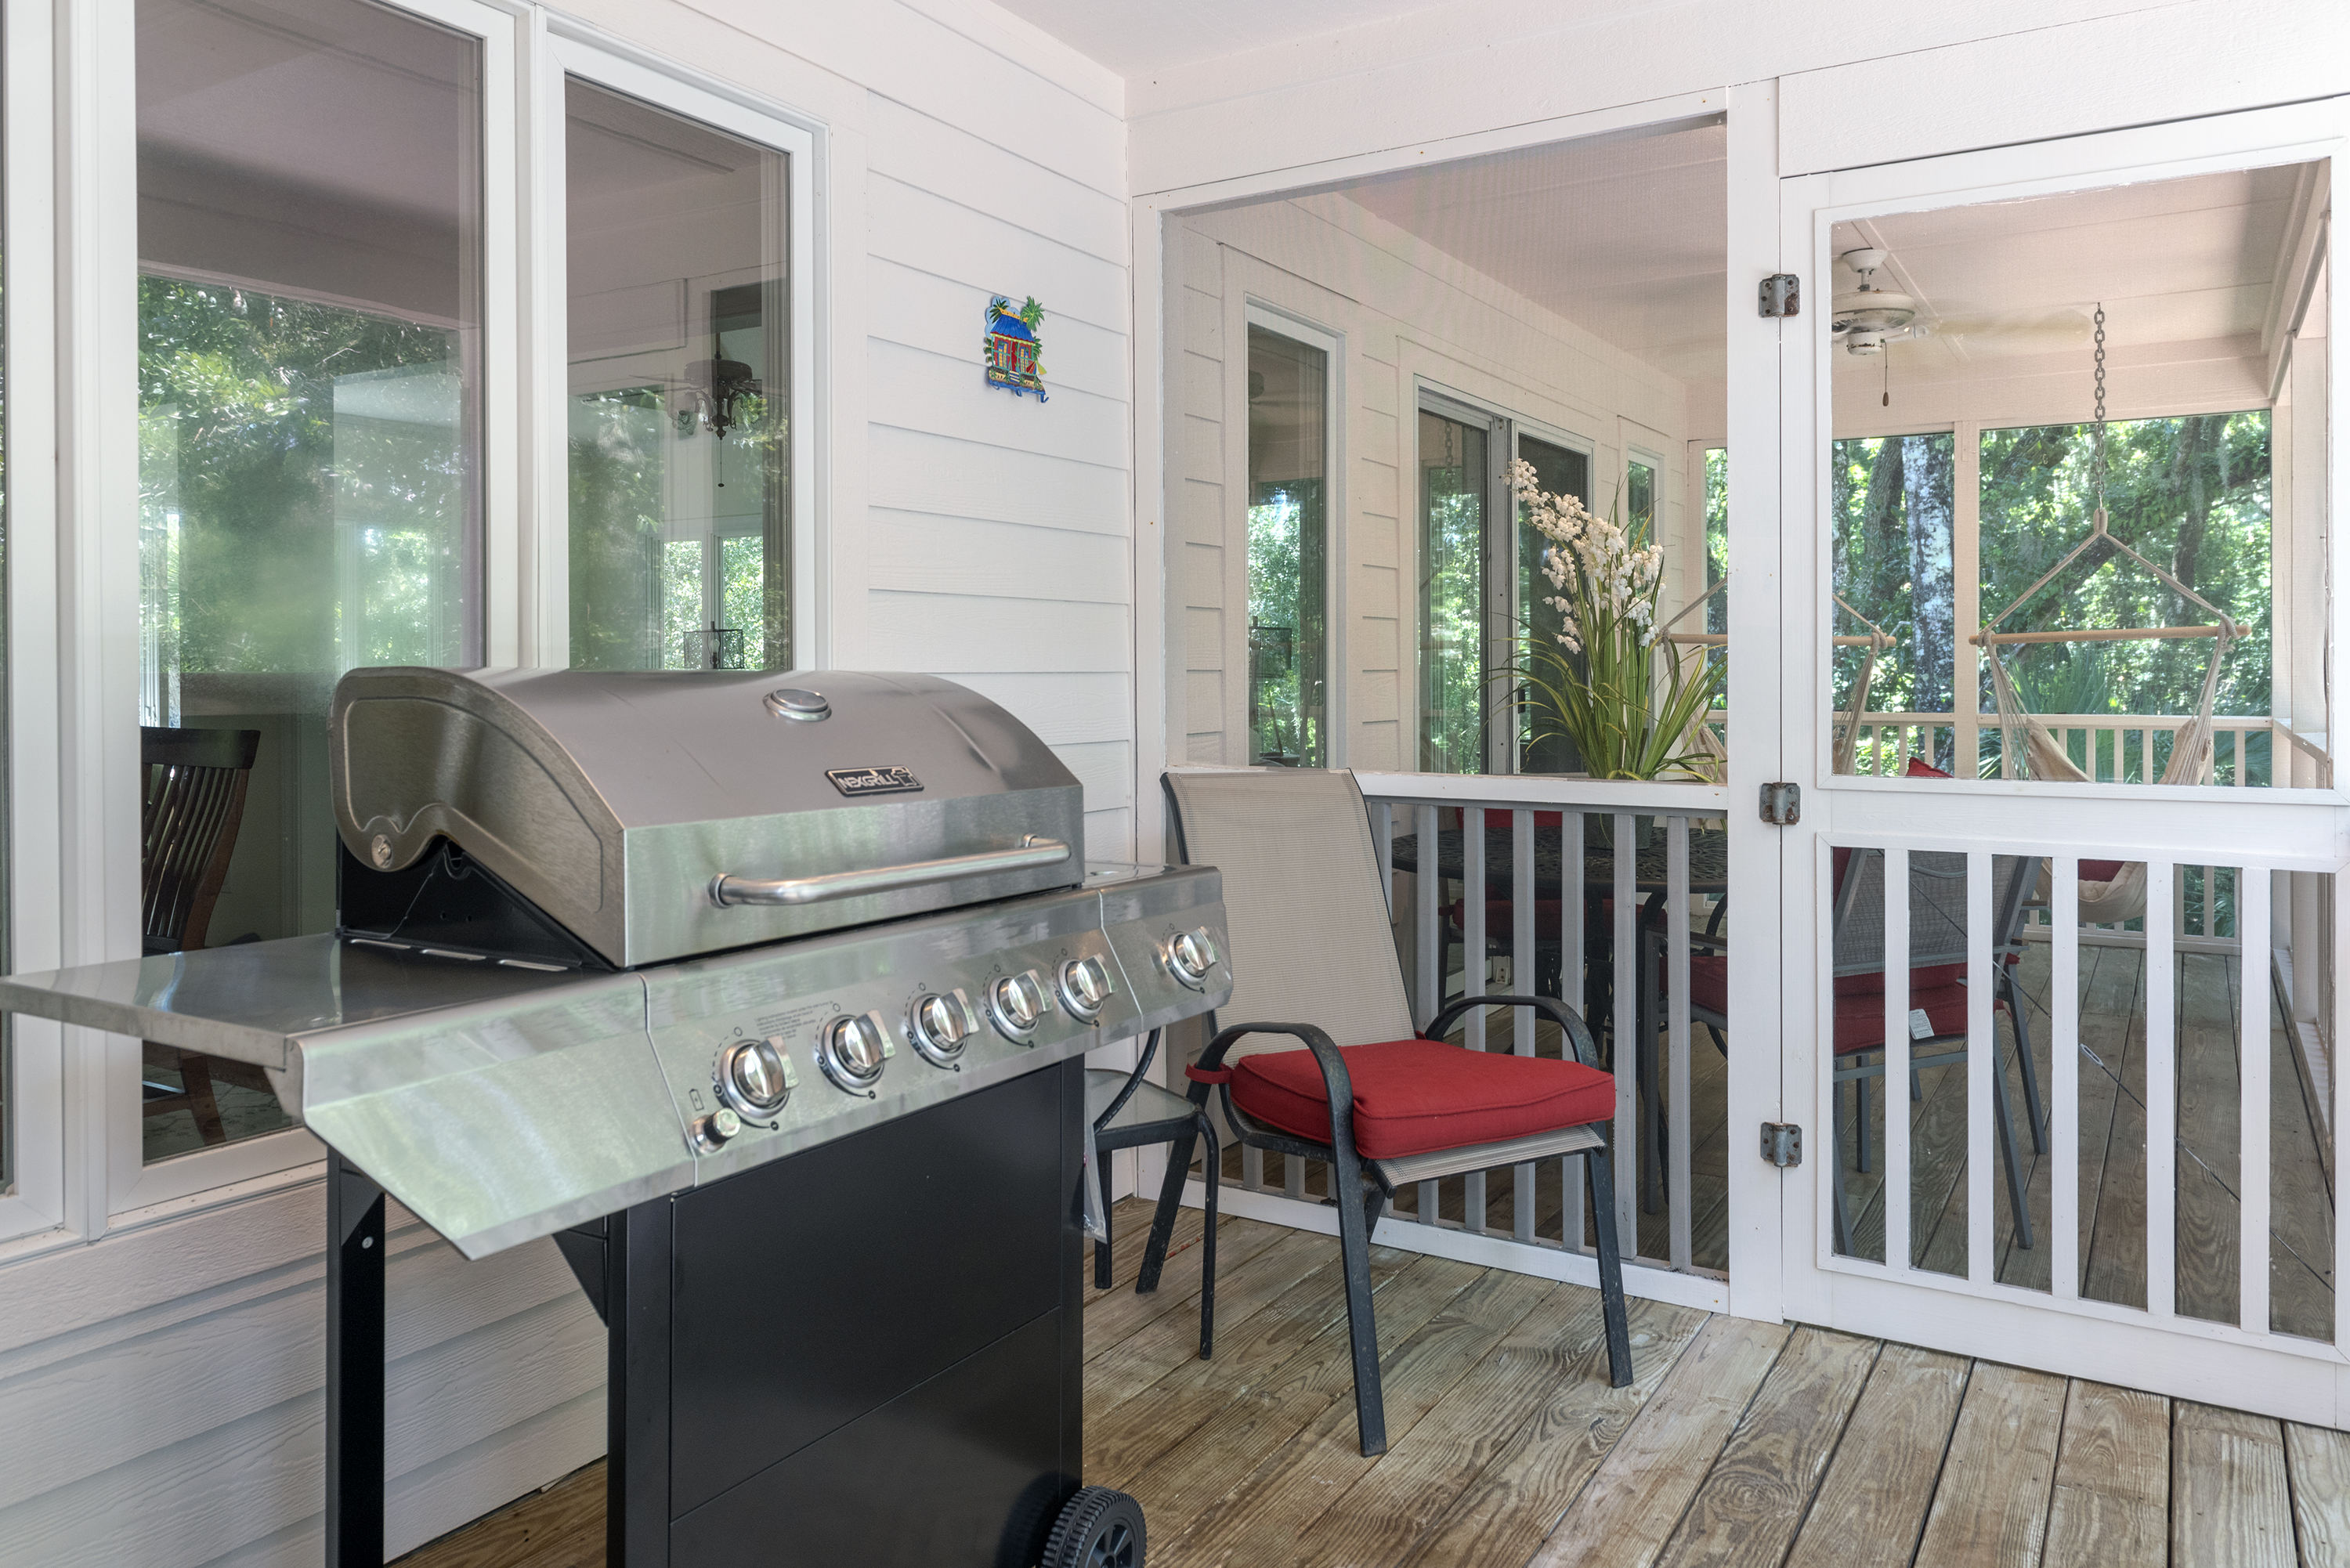 Open deck with propane grill